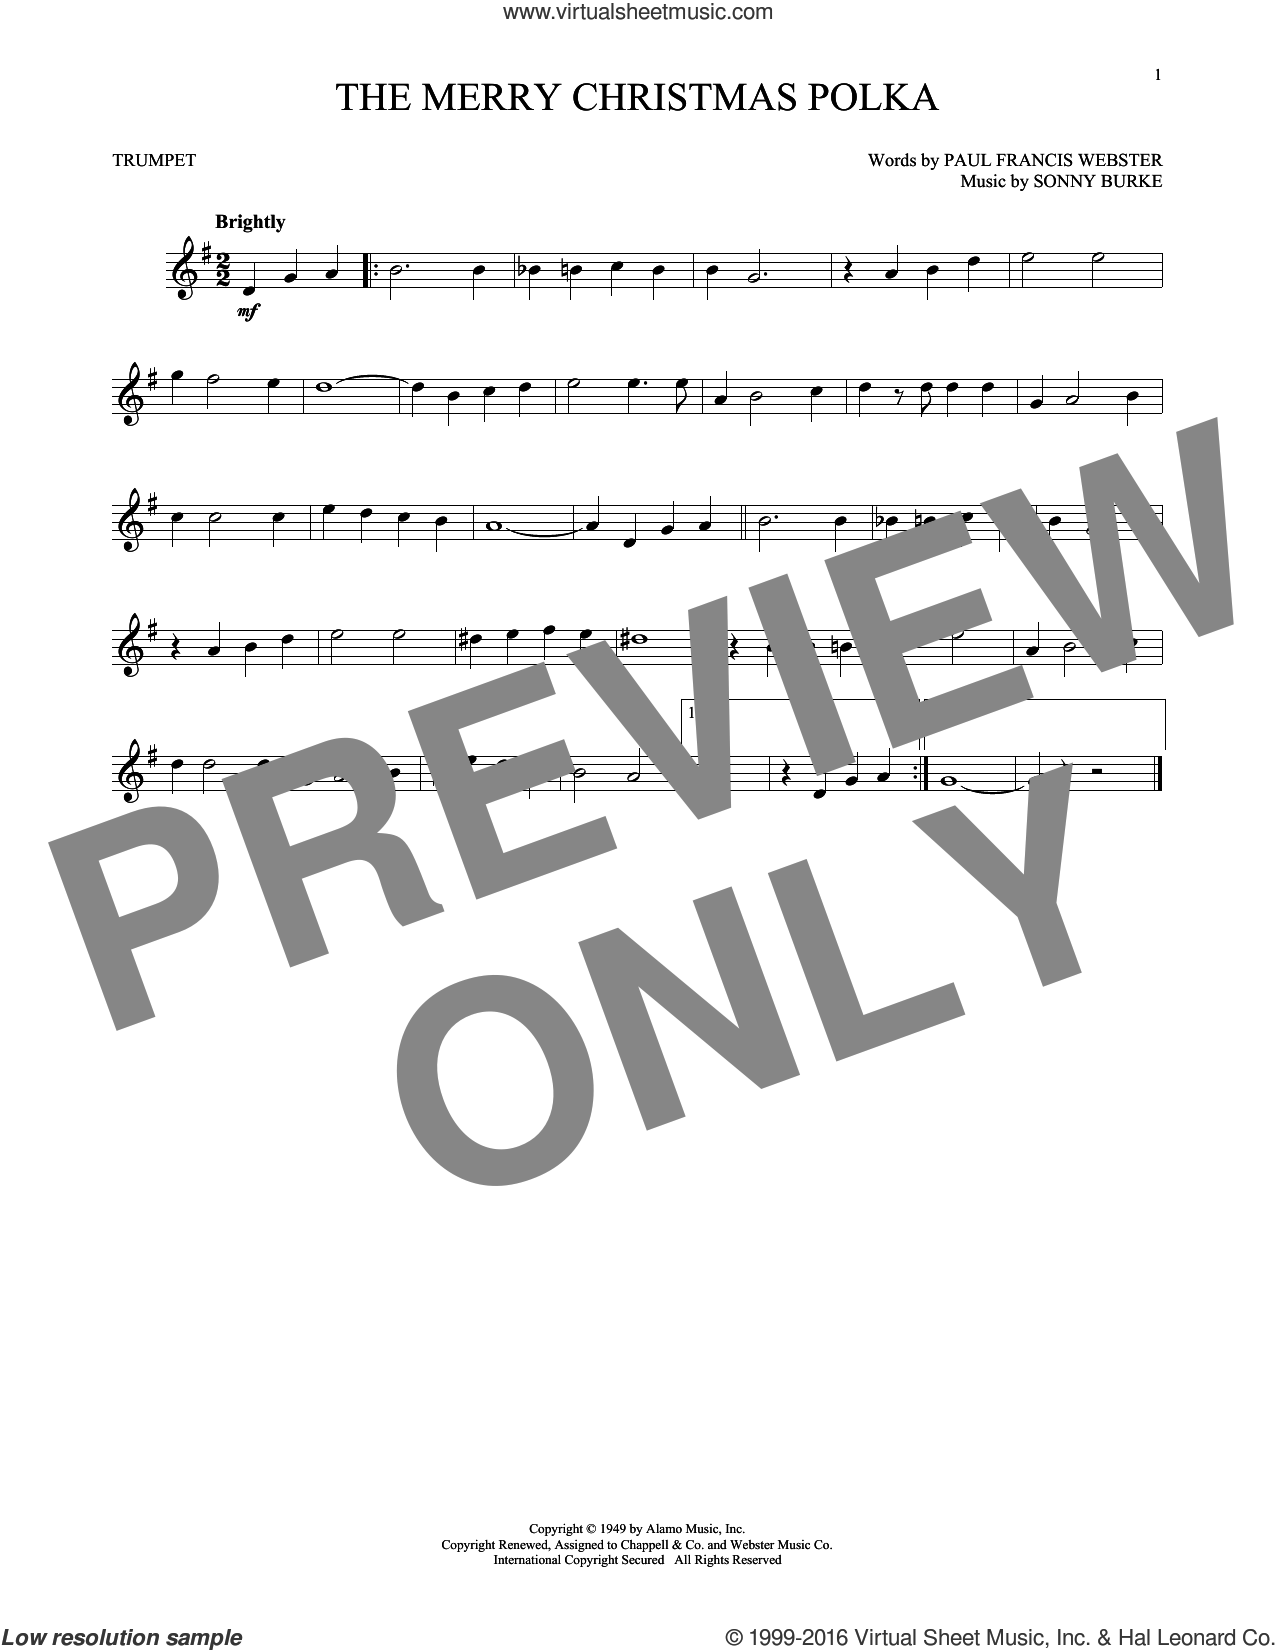 The Merry Christmas Polka sheet music for trumpet solo by Paul Francis Webster and Sonny Burke, intermediate skill level